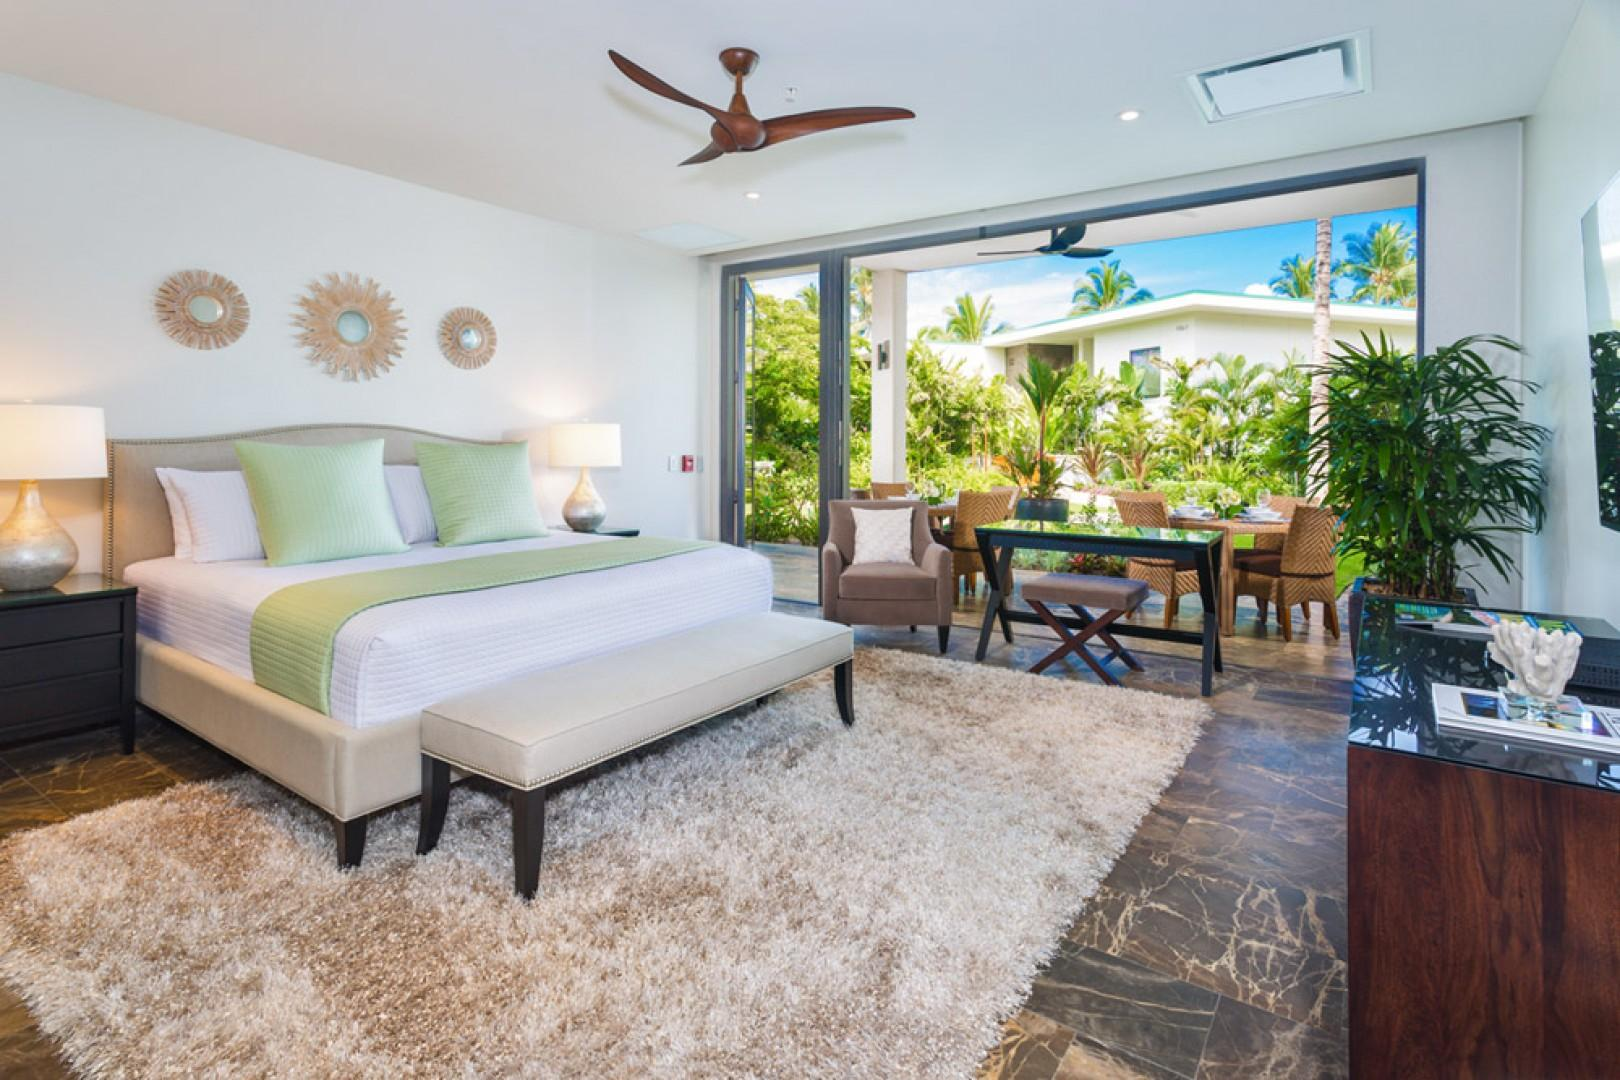 SeaGlass Villa 810 at Andaz Maui Wailea Resort - King Master Bedroom Suite with Floor-to-Ceiling Glass Sliding Doors, Desk, HDTV with Netflix and En-Suite Bath. Direct garden, pool and patio access.